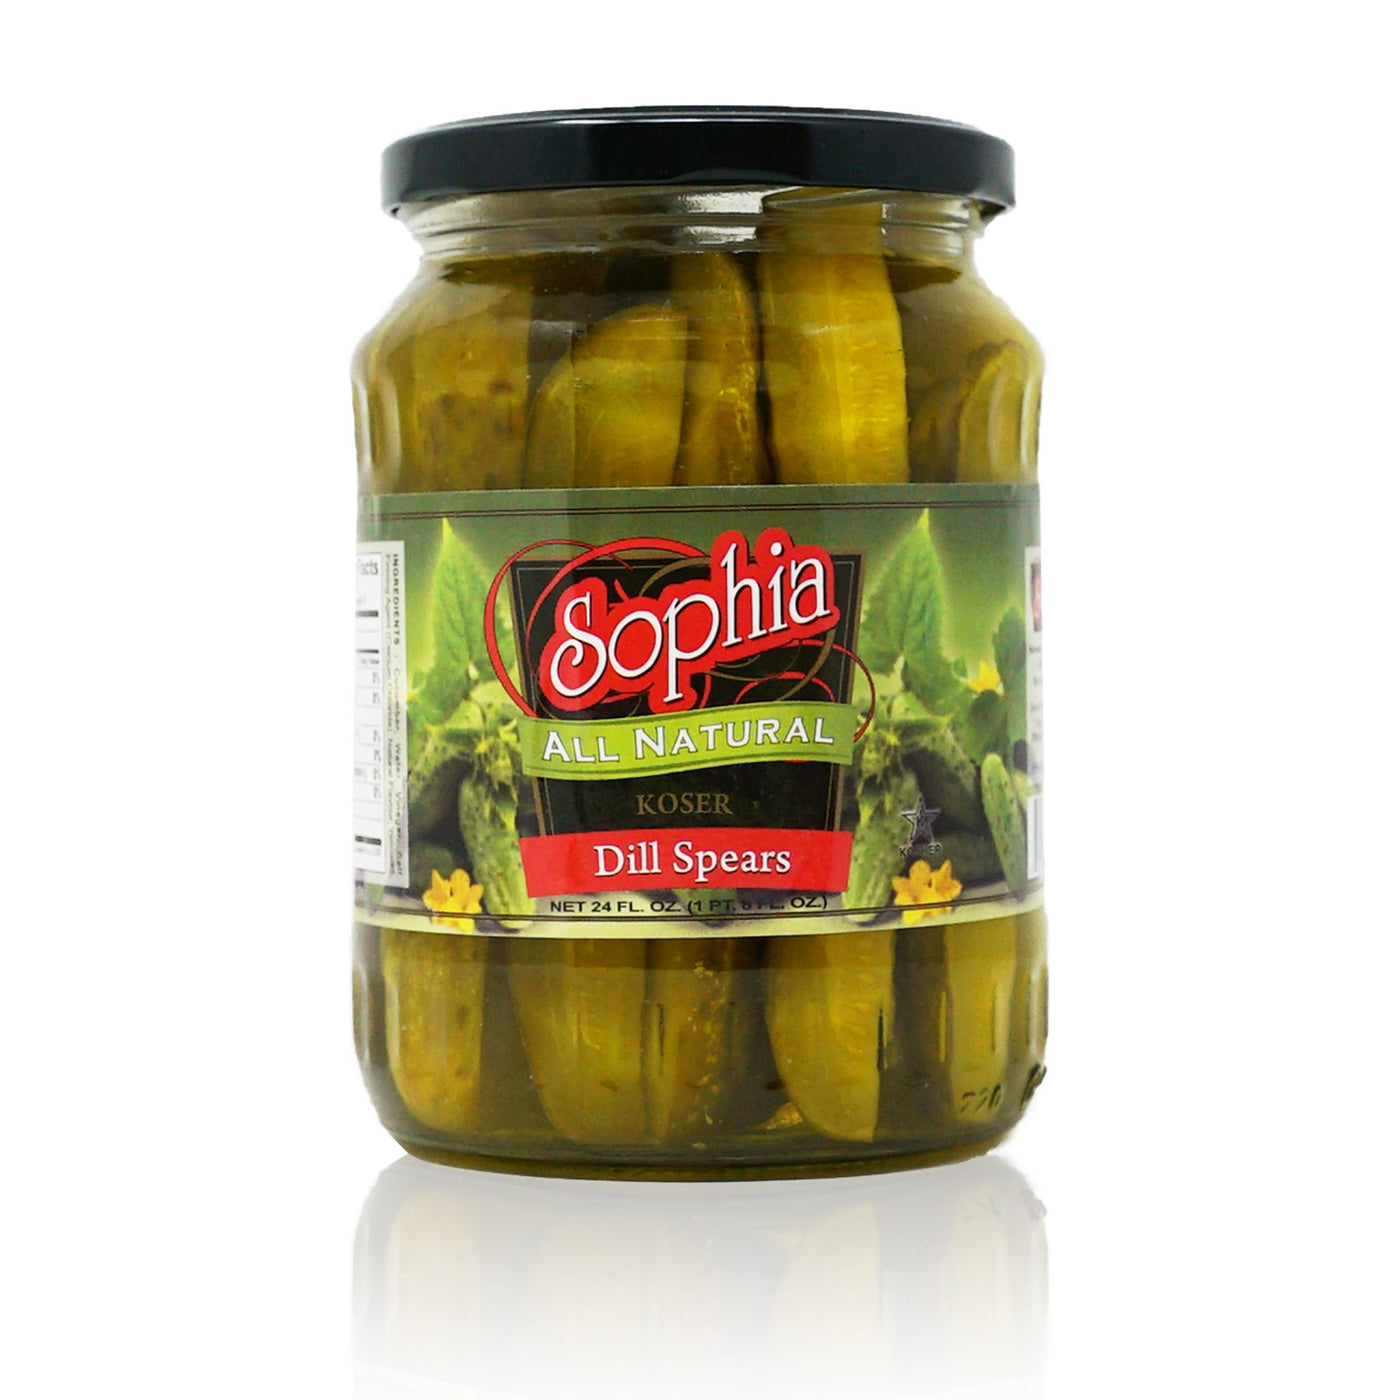 Sophia Pickles - Dill Spears 24oz